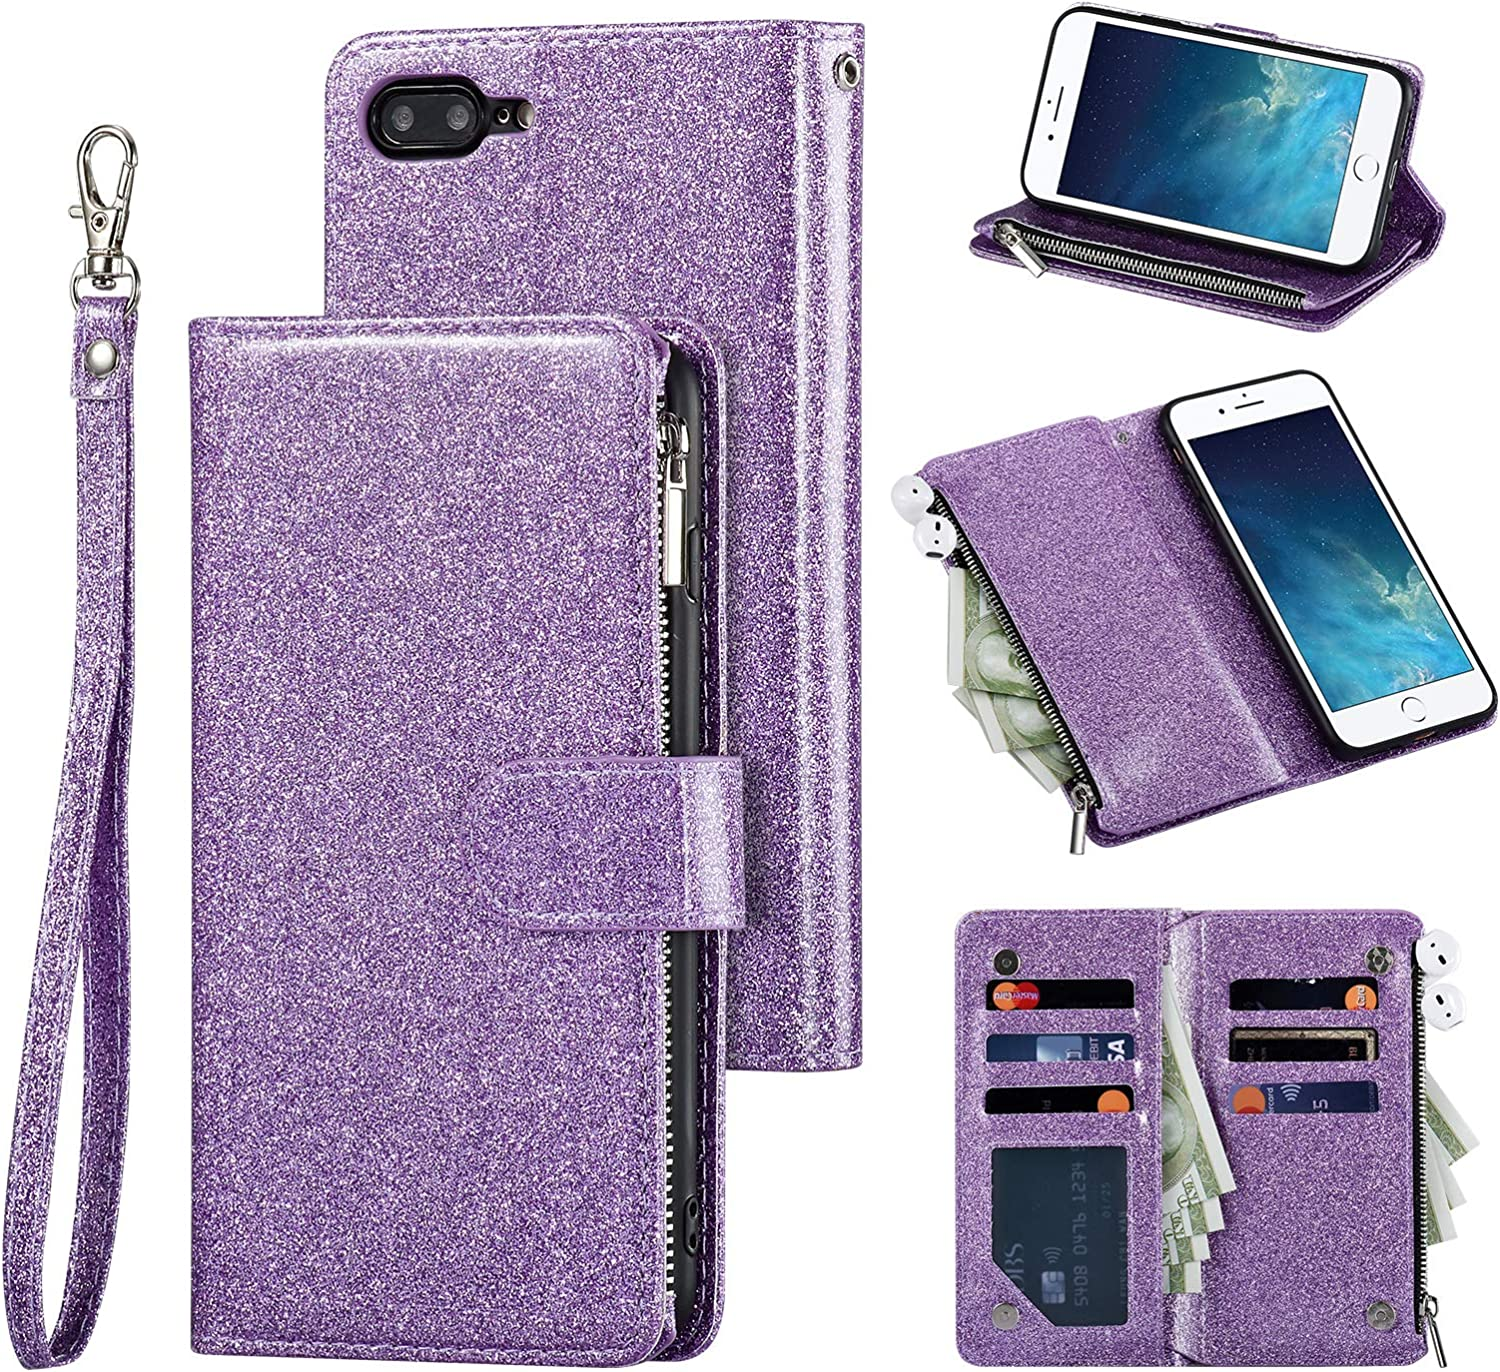 QLTYPRI Wallet Case for iPhone 7 iPhone 8 iPhone SE 2020, Zipper Pocket Wallet Case Premium Glitter PU Leather Card Holder Slots with Kickstand Wrist Strap Magnetic Closure Cover - Purple